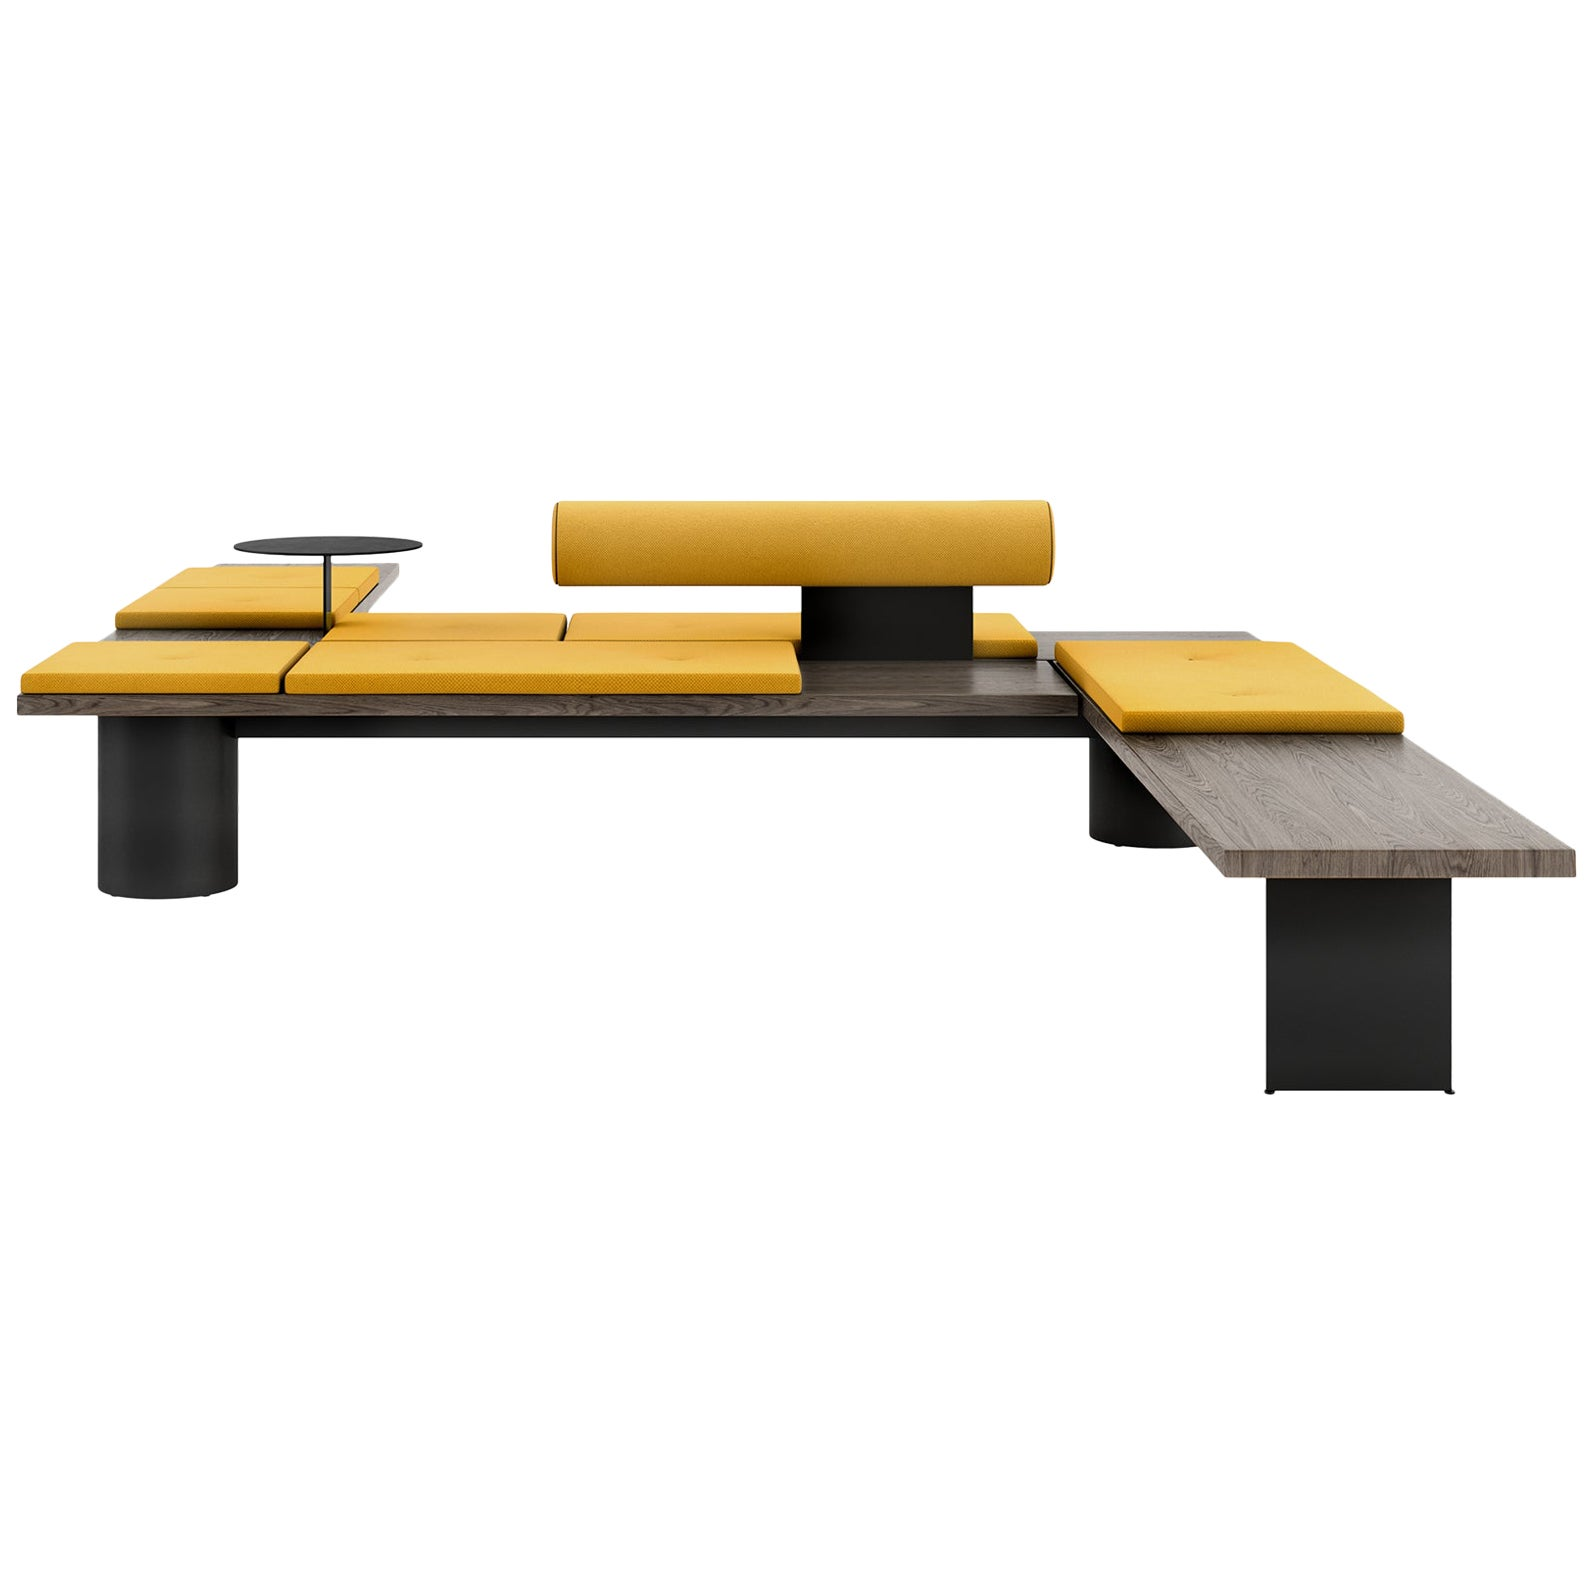 Tacchini Galleria Modular System in Wood with Steel Base by Pearson Lloyd